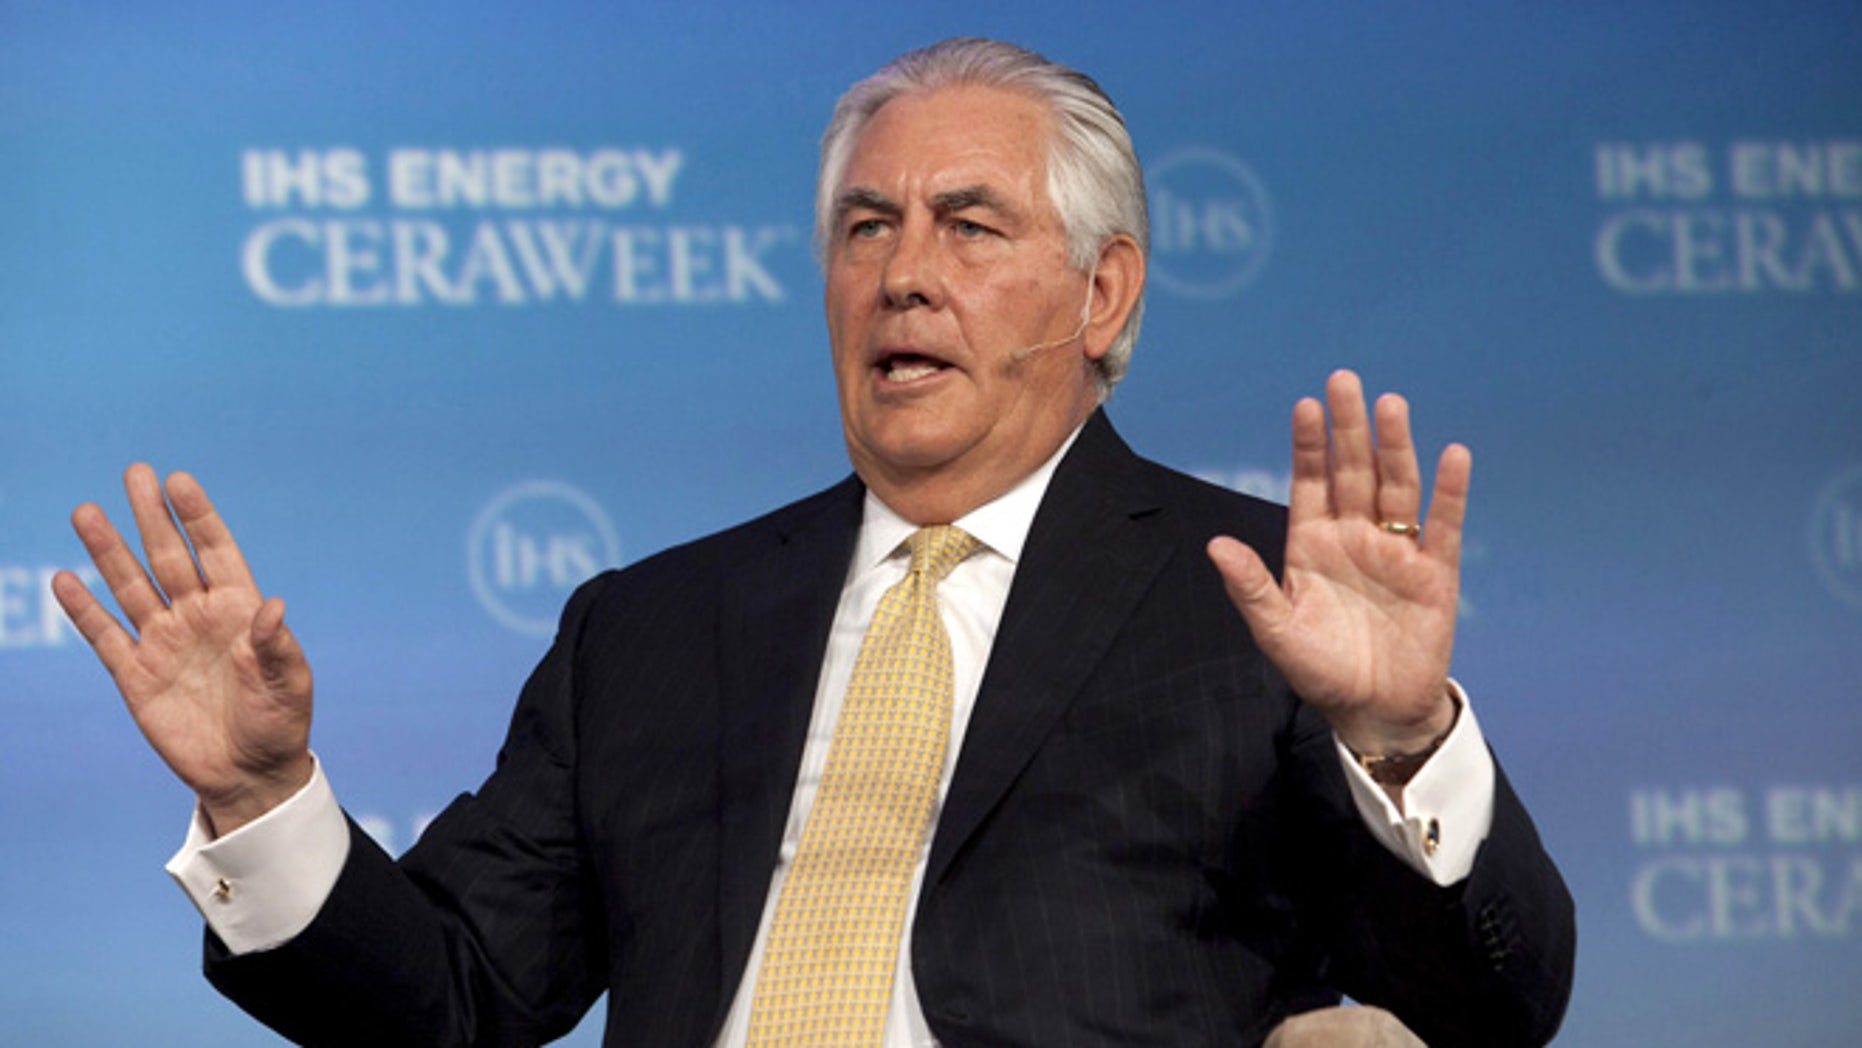 FILE -- ExxonMobil Chairman and CEO Rex Tillerson speaks during the IHS CERAWeek 2015 energy conference in Houston, Texas April 21, 2015.